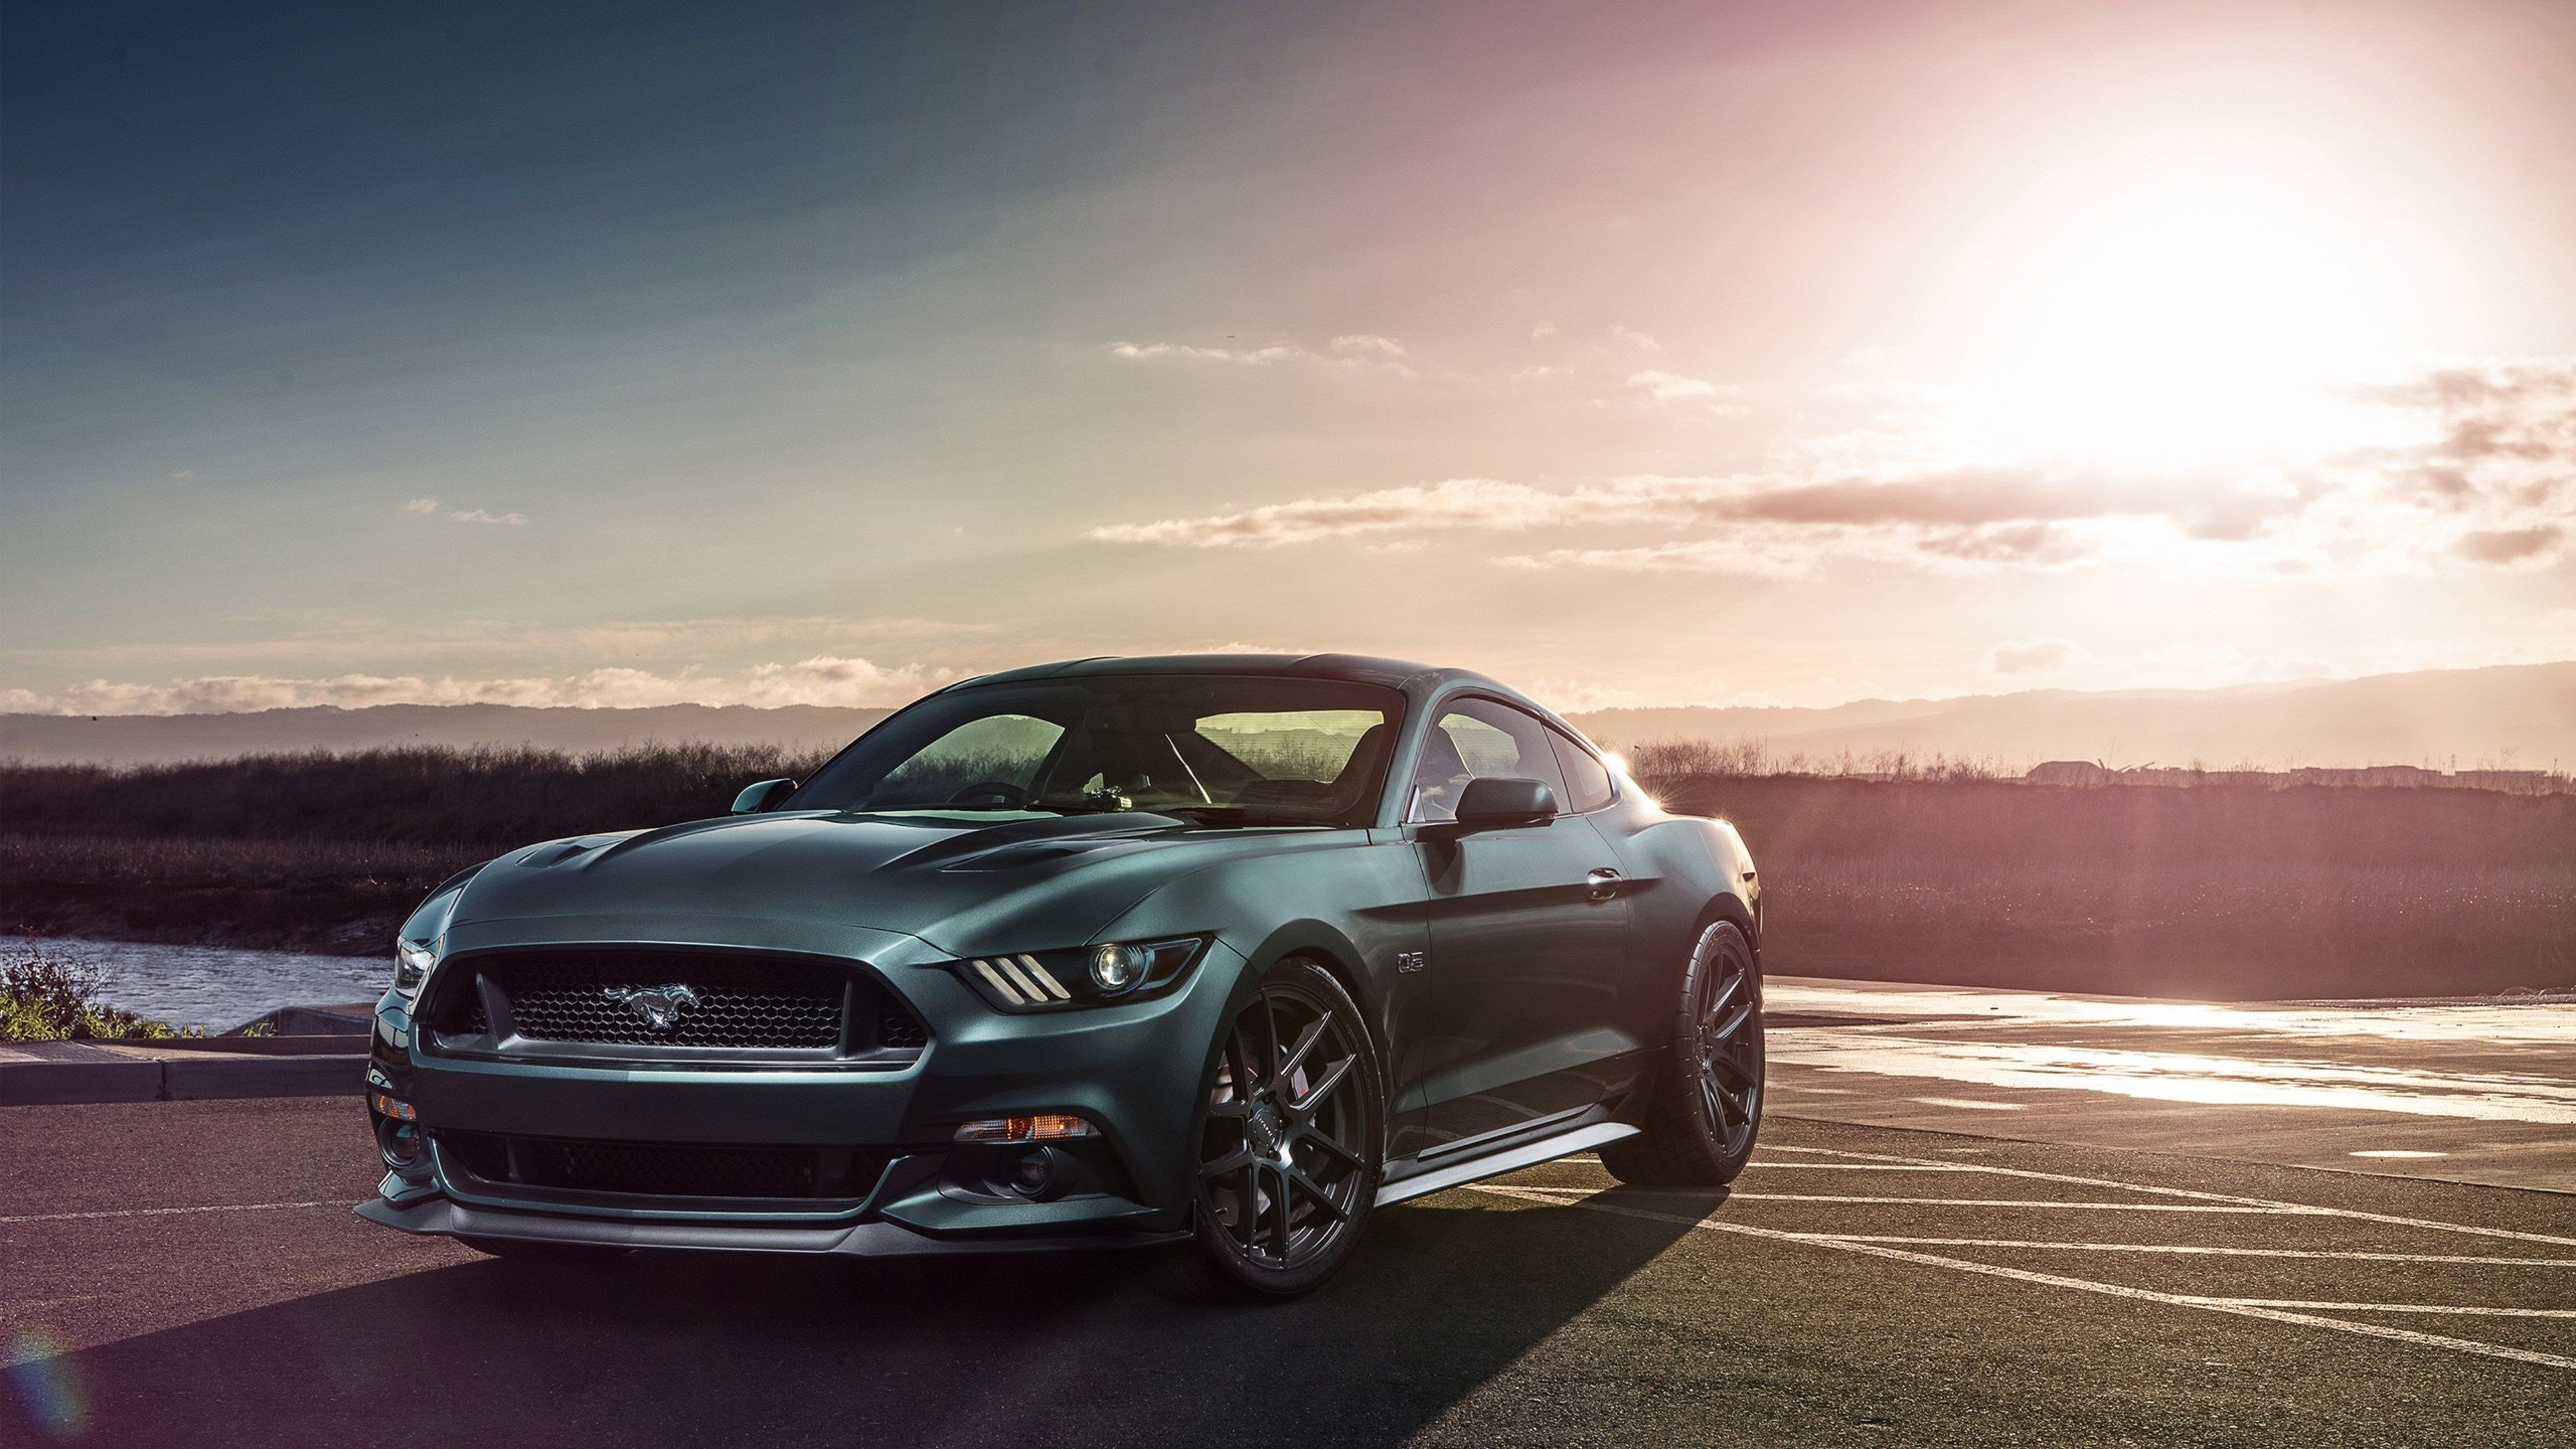 3840x2160 Ford Mustang 4k Wallpaper Download For Pc Ford Mustang Mustang Gt Mustang